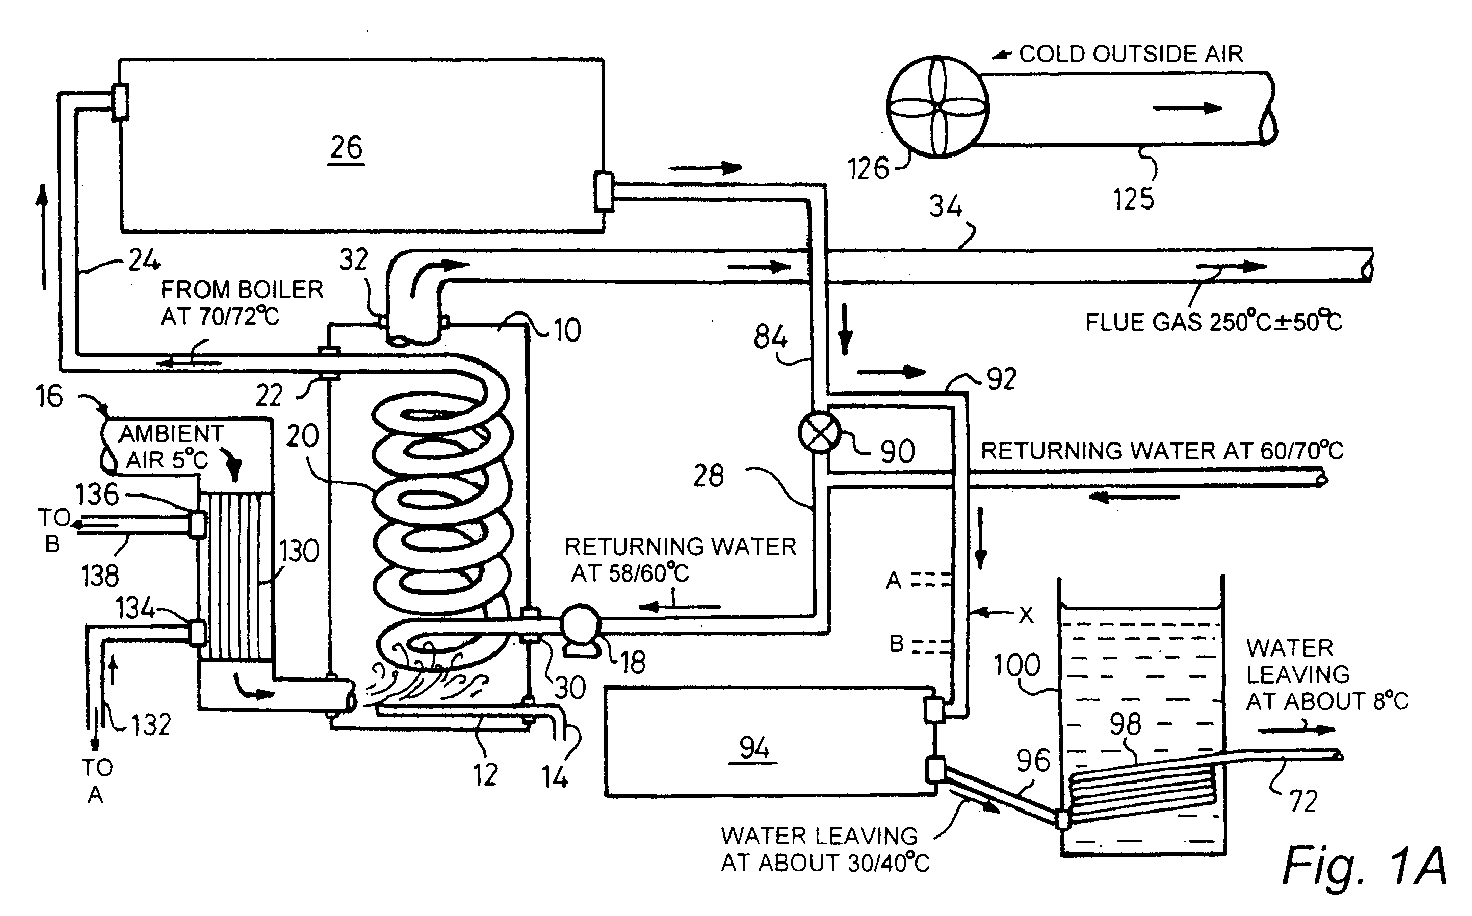 diagrams of heating system piping